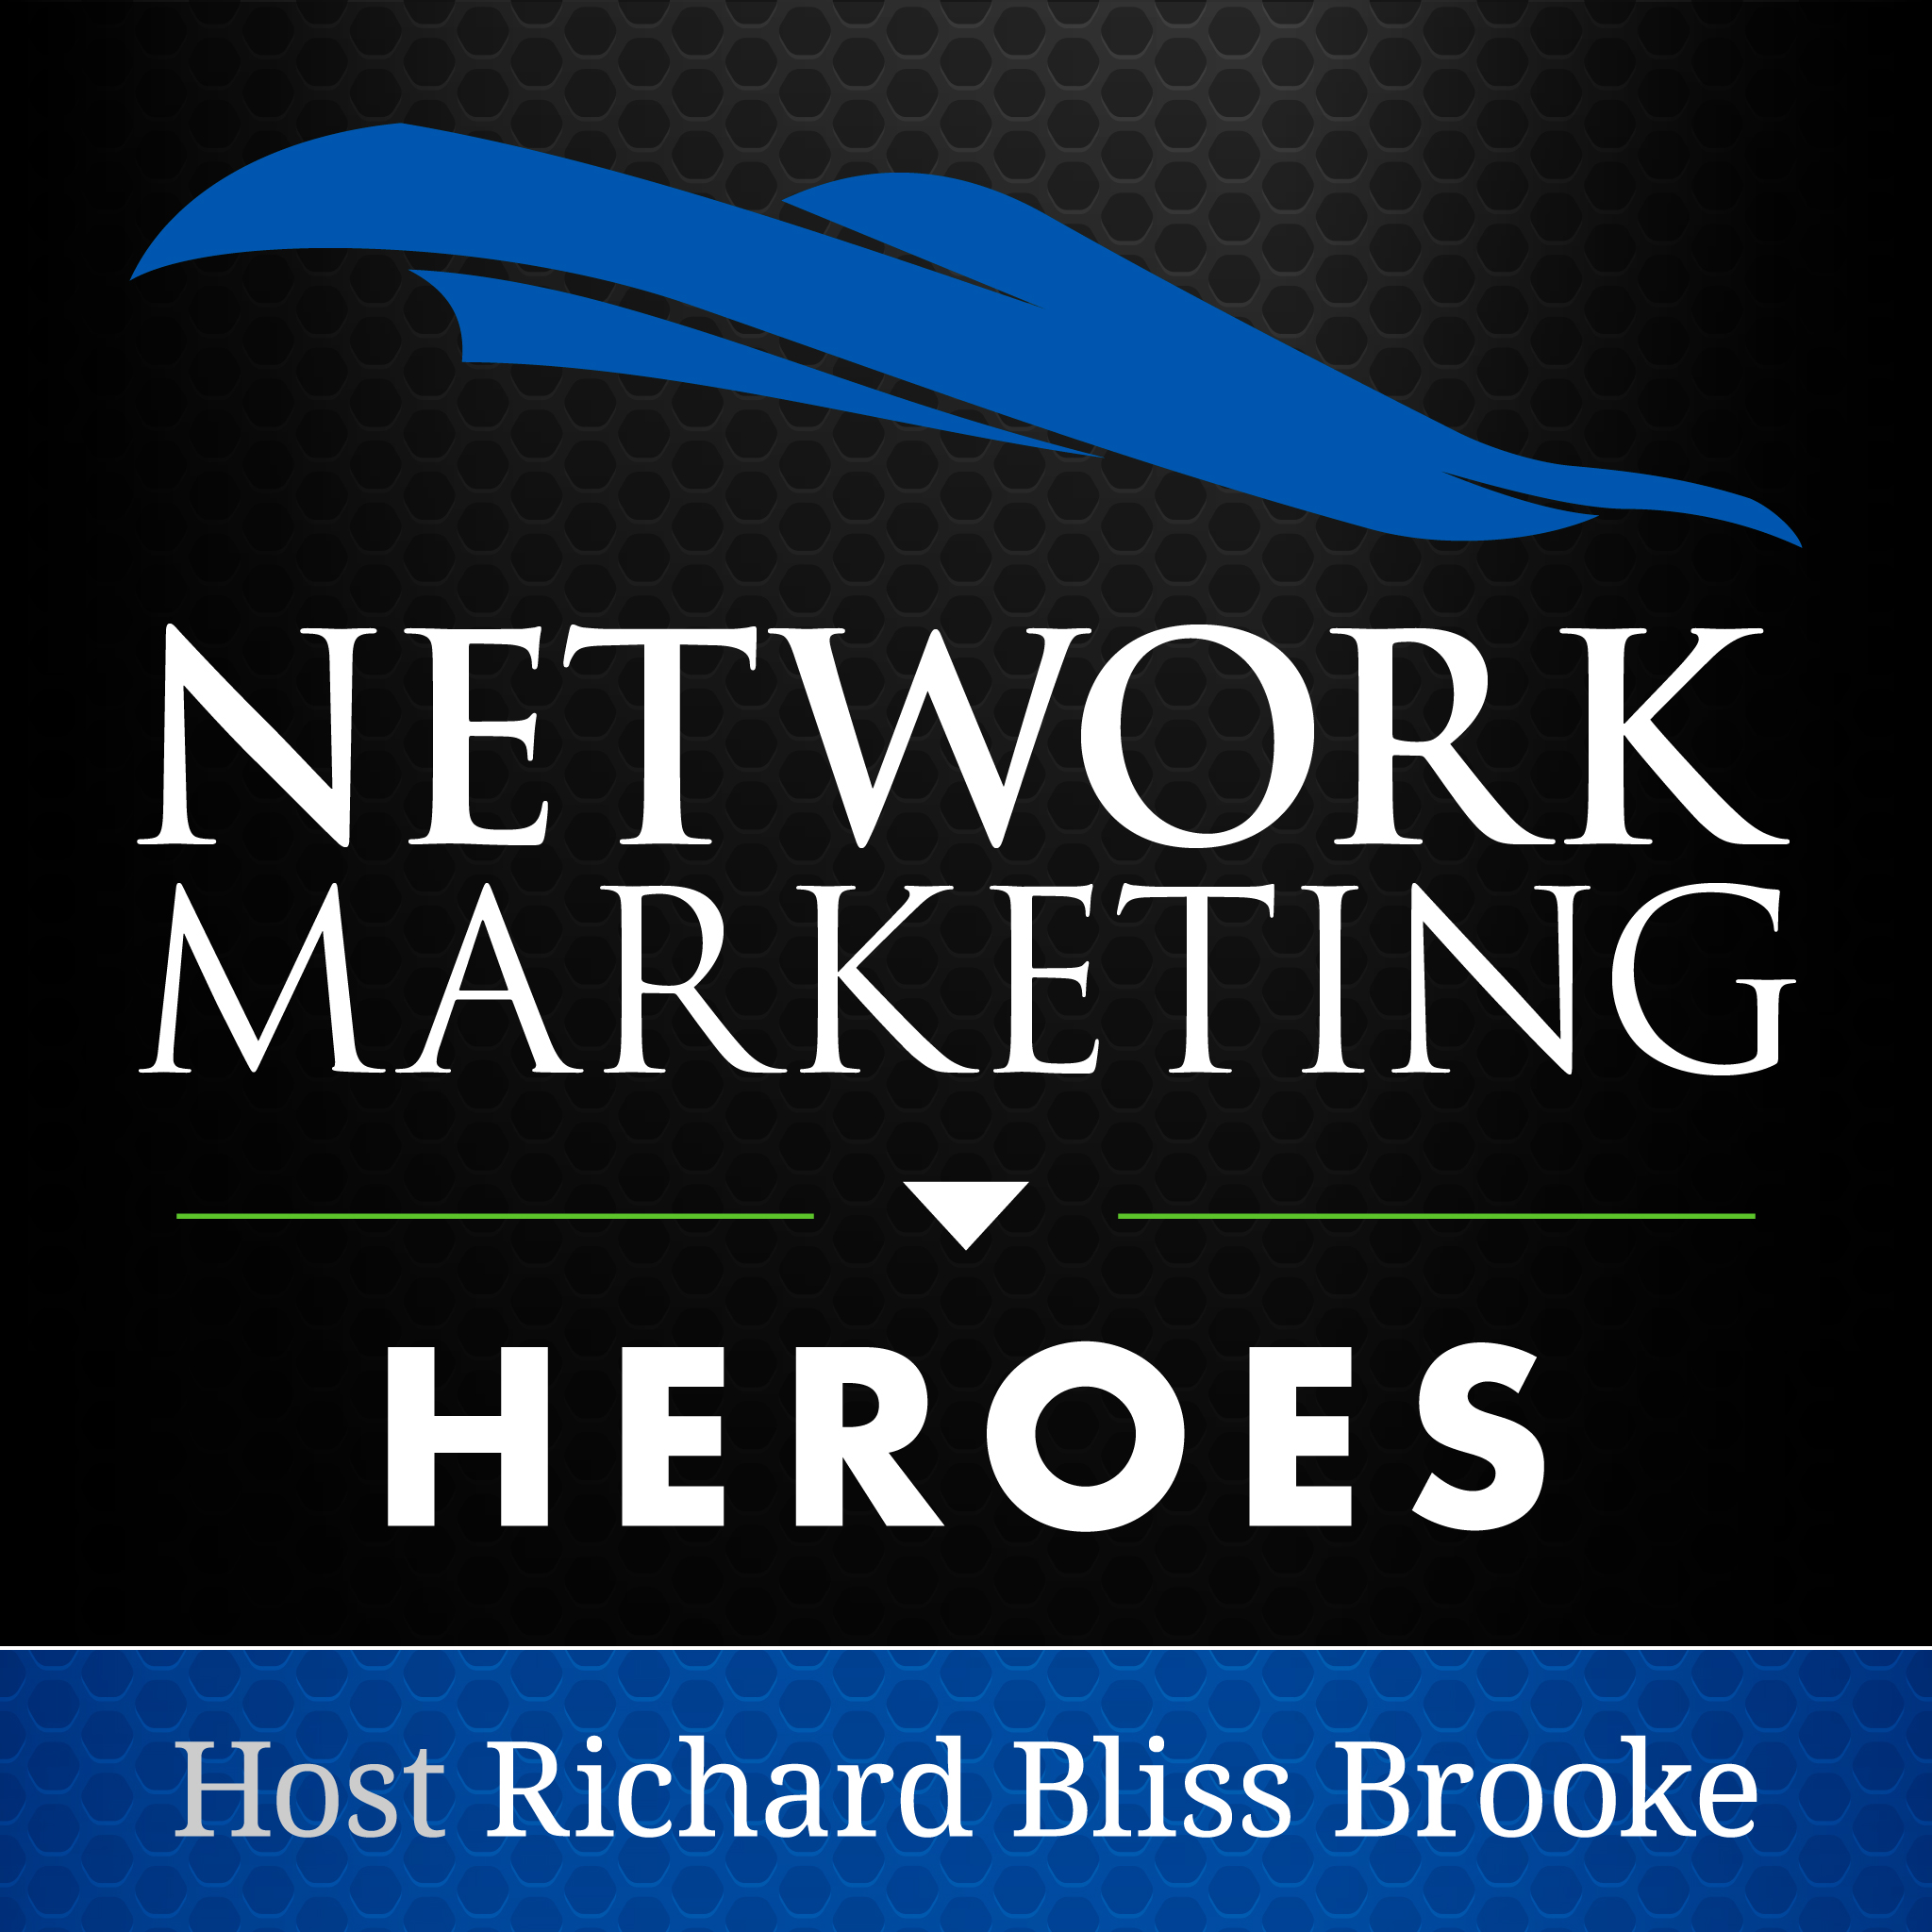 Network Marketing Heroes: Host Richard Bliss Brooke